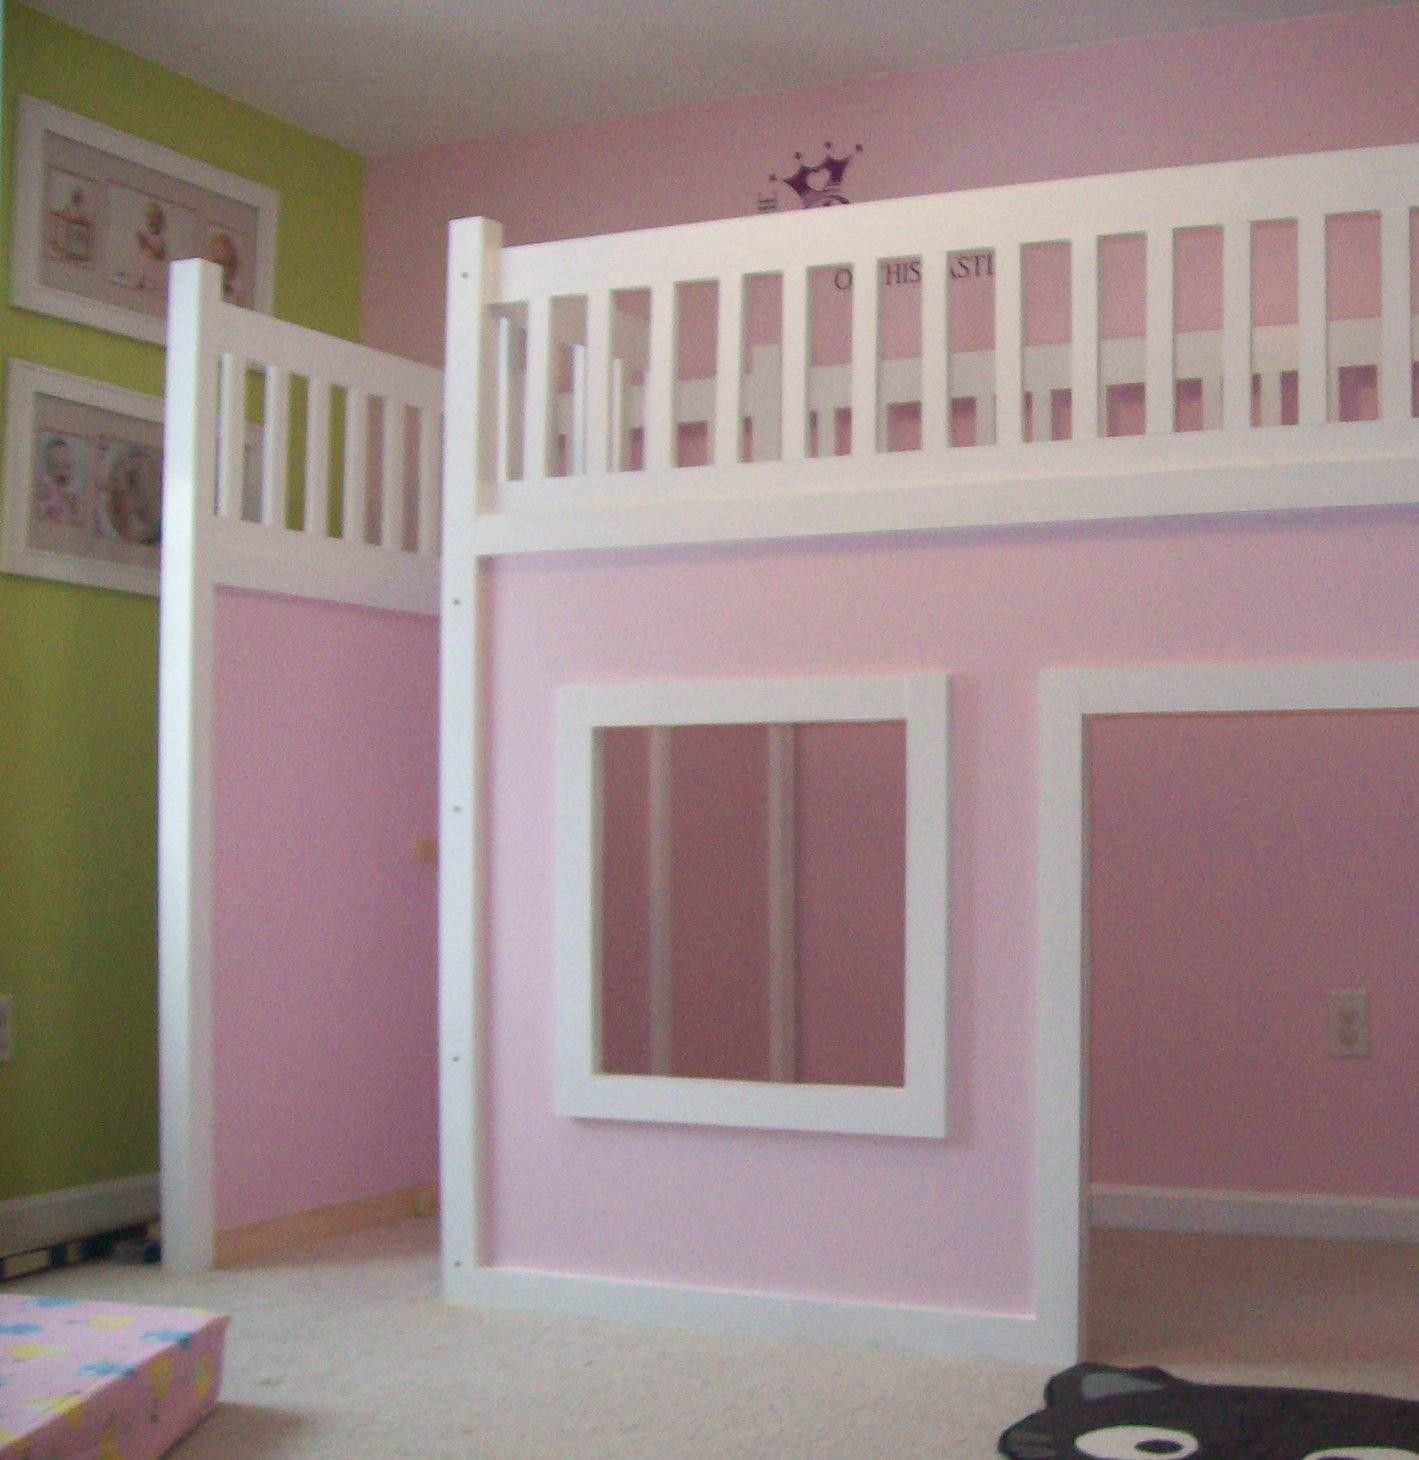 Loft bed with storage stairs  Storage Stairs for the Playhouse Loft Bed  Brylie beds  Pinterest